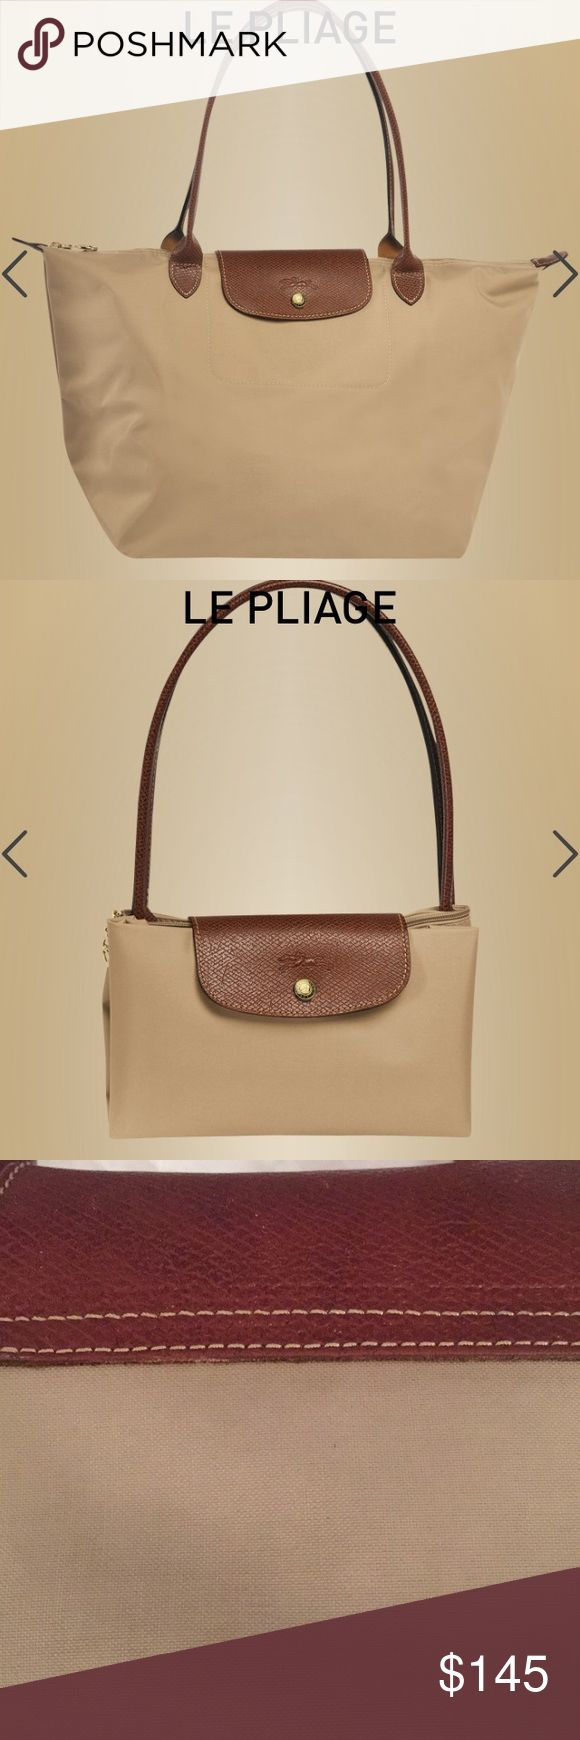 """STAINED Tan nylon Longchamp Les Pliages large tote STAINED Tan nylon large Longchamp Les Pliages """"shopping"""" bag. Modele depose made in France. ‼️‼️‼️LARGE STAINS on outside bag‼️‼️‼️review pics carefully.   Bought in France yrs ago/great neutral color ‼️needs cleaning‼️edges are wearing / tearing EXTERIOR Closing : Zipped & snap closure Compartment : 1 INTERIOR patch pocket : 1 Body : Polyamide canvas with inside coating, Trimming : Cowhide (Brown) To remove dirt, clean the whole lining…"""